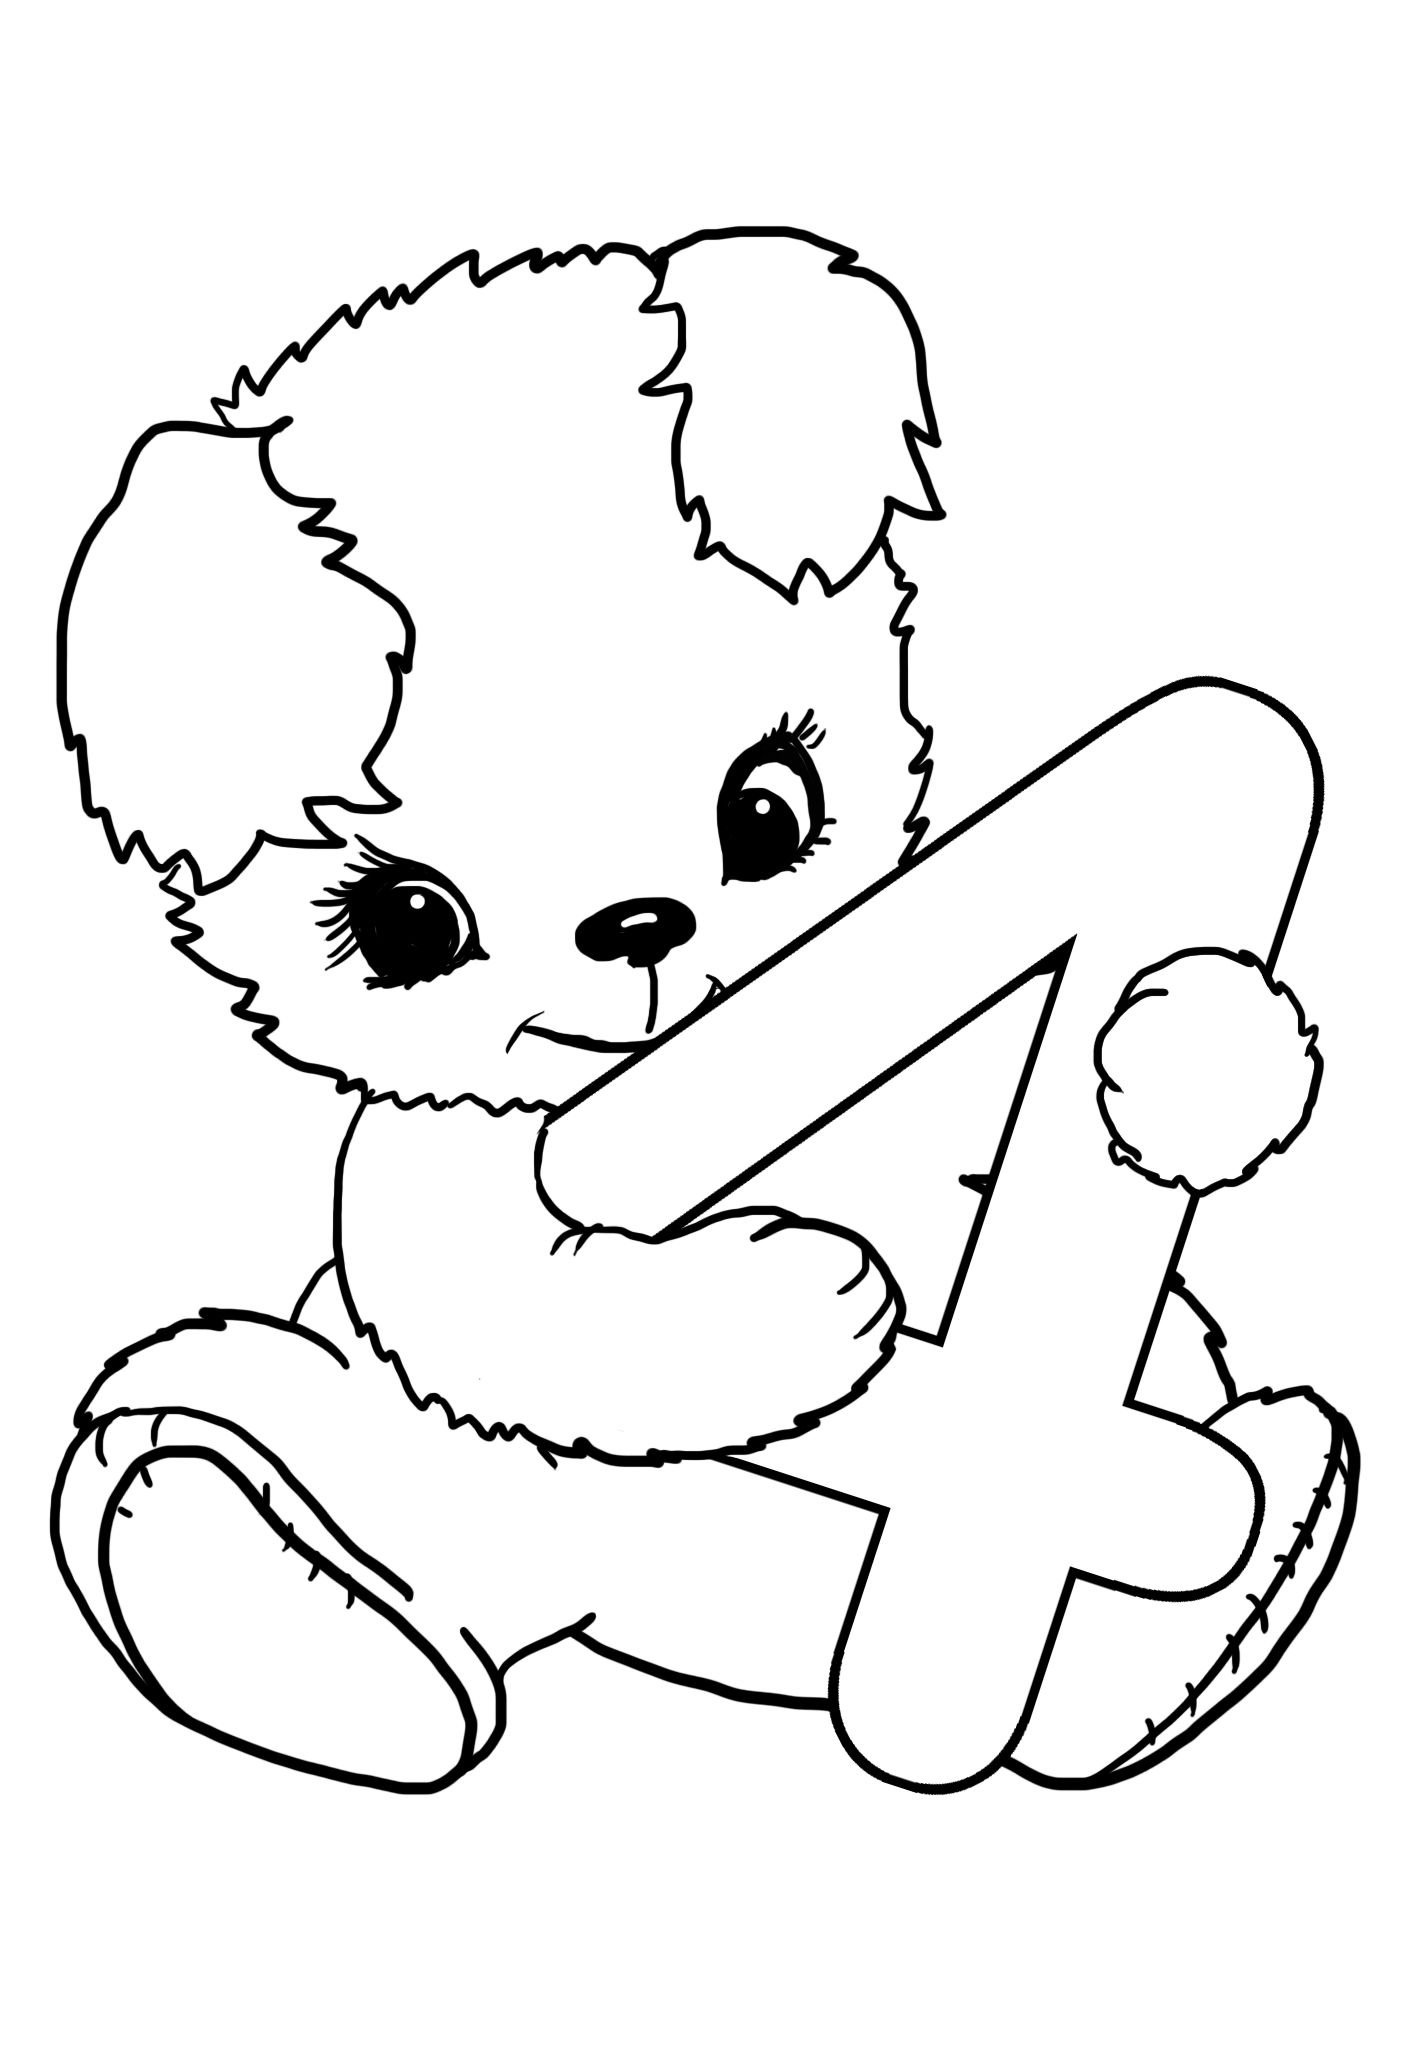 4th birthday coloring sheet with teddy bear